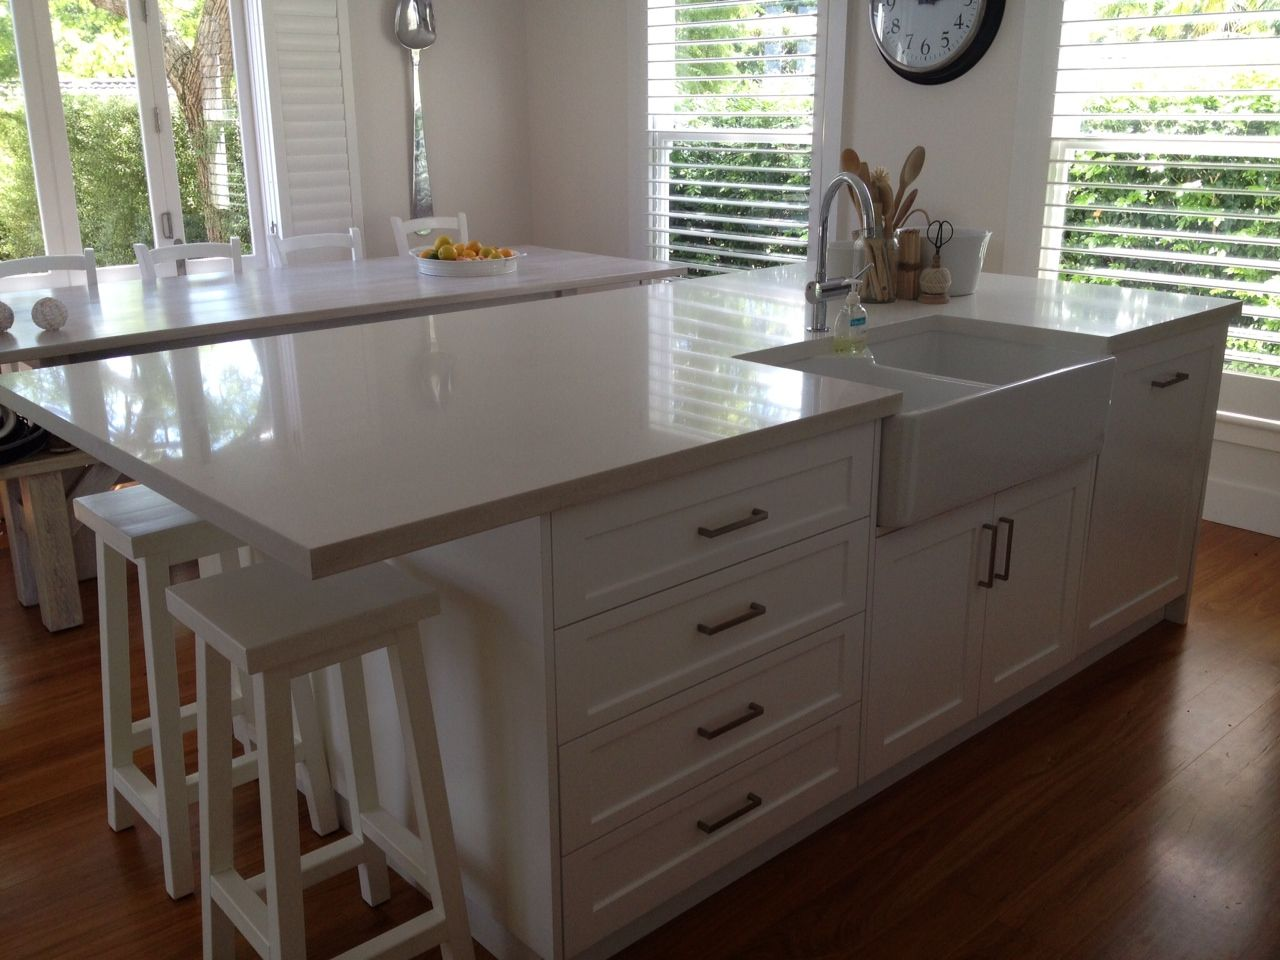 Kitchen island with sink and seating butler sink kitchen Kitchen island with sink and seating